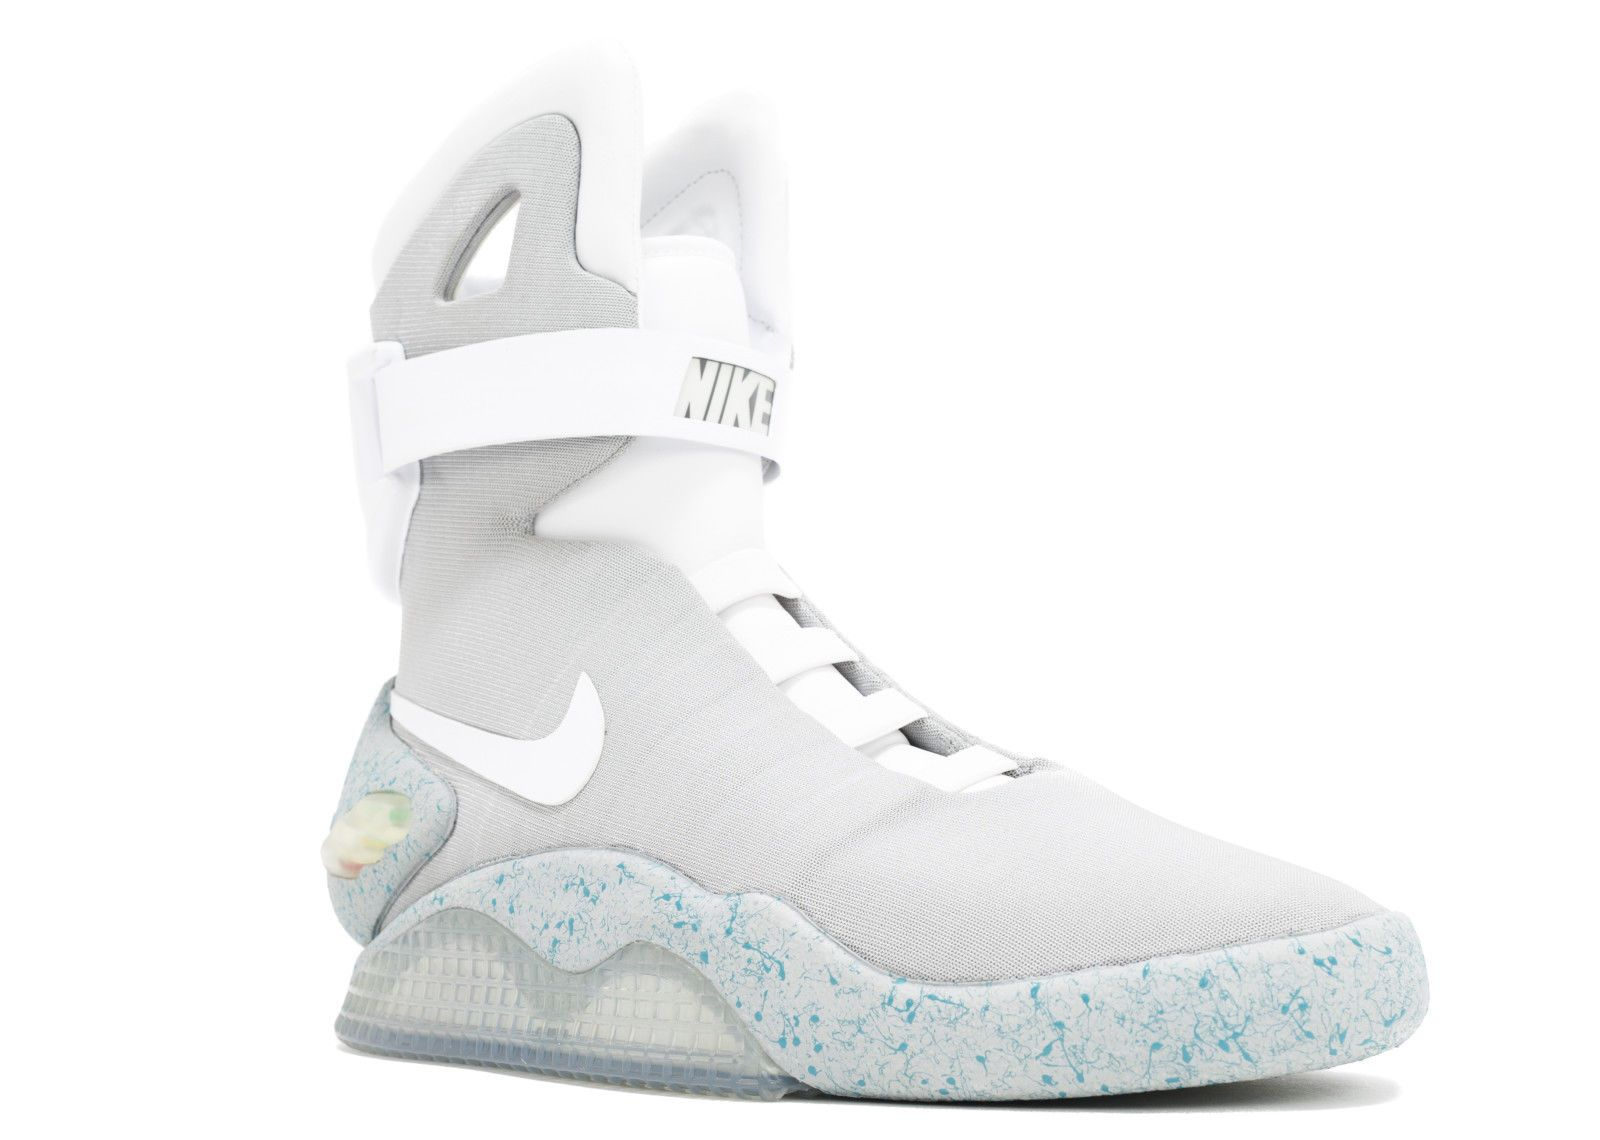 NEW Nike Air Mag Marty McFly BTTF Back to the Future Shoes